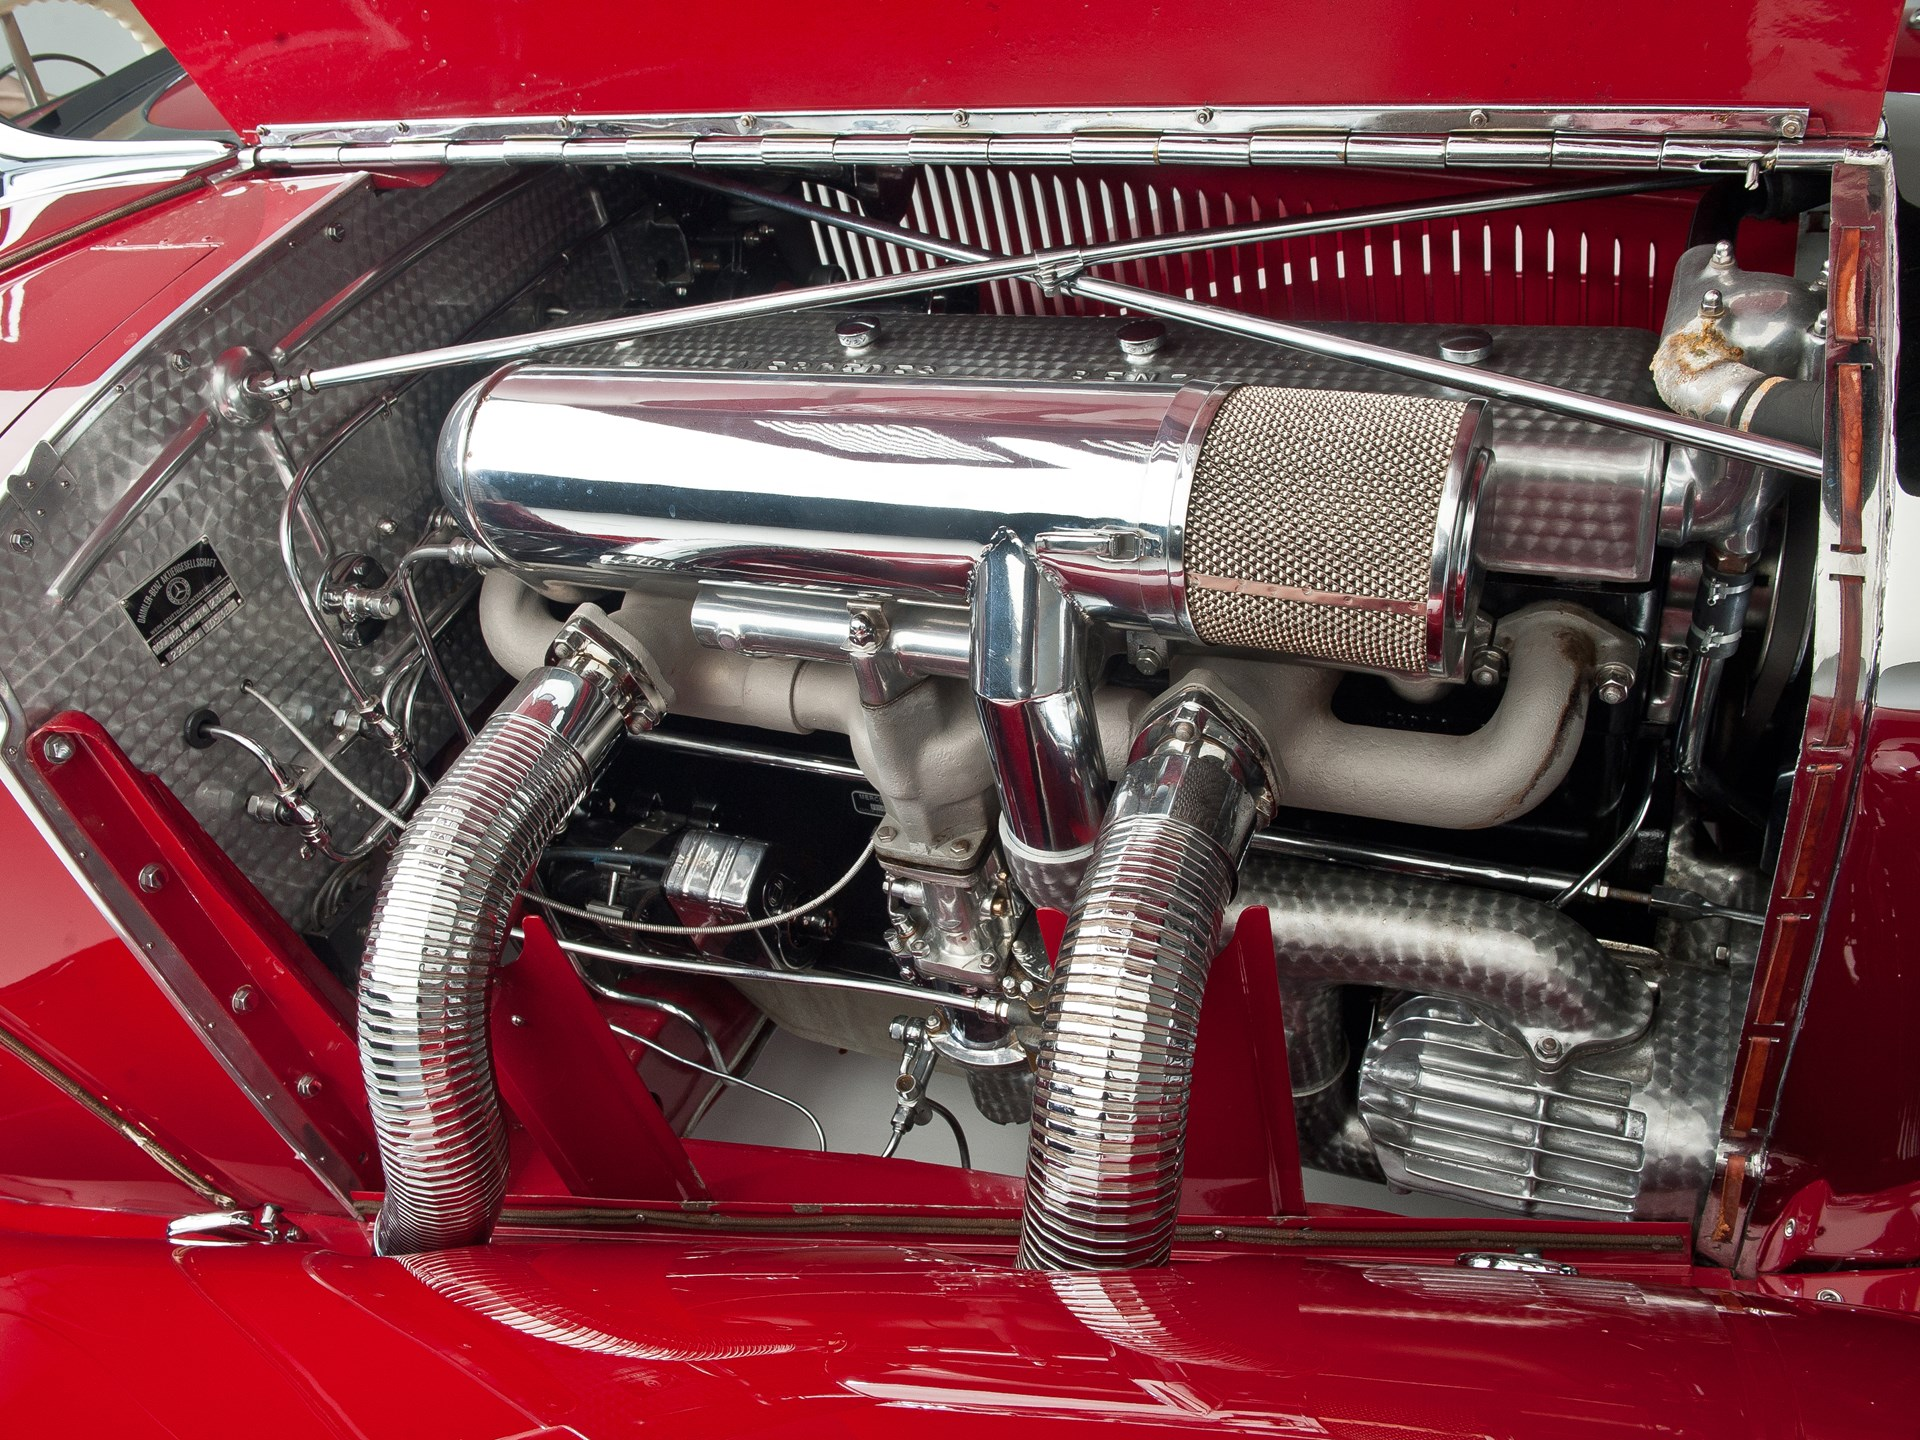 1935 Mercedes-Benz 500k supercharger engine